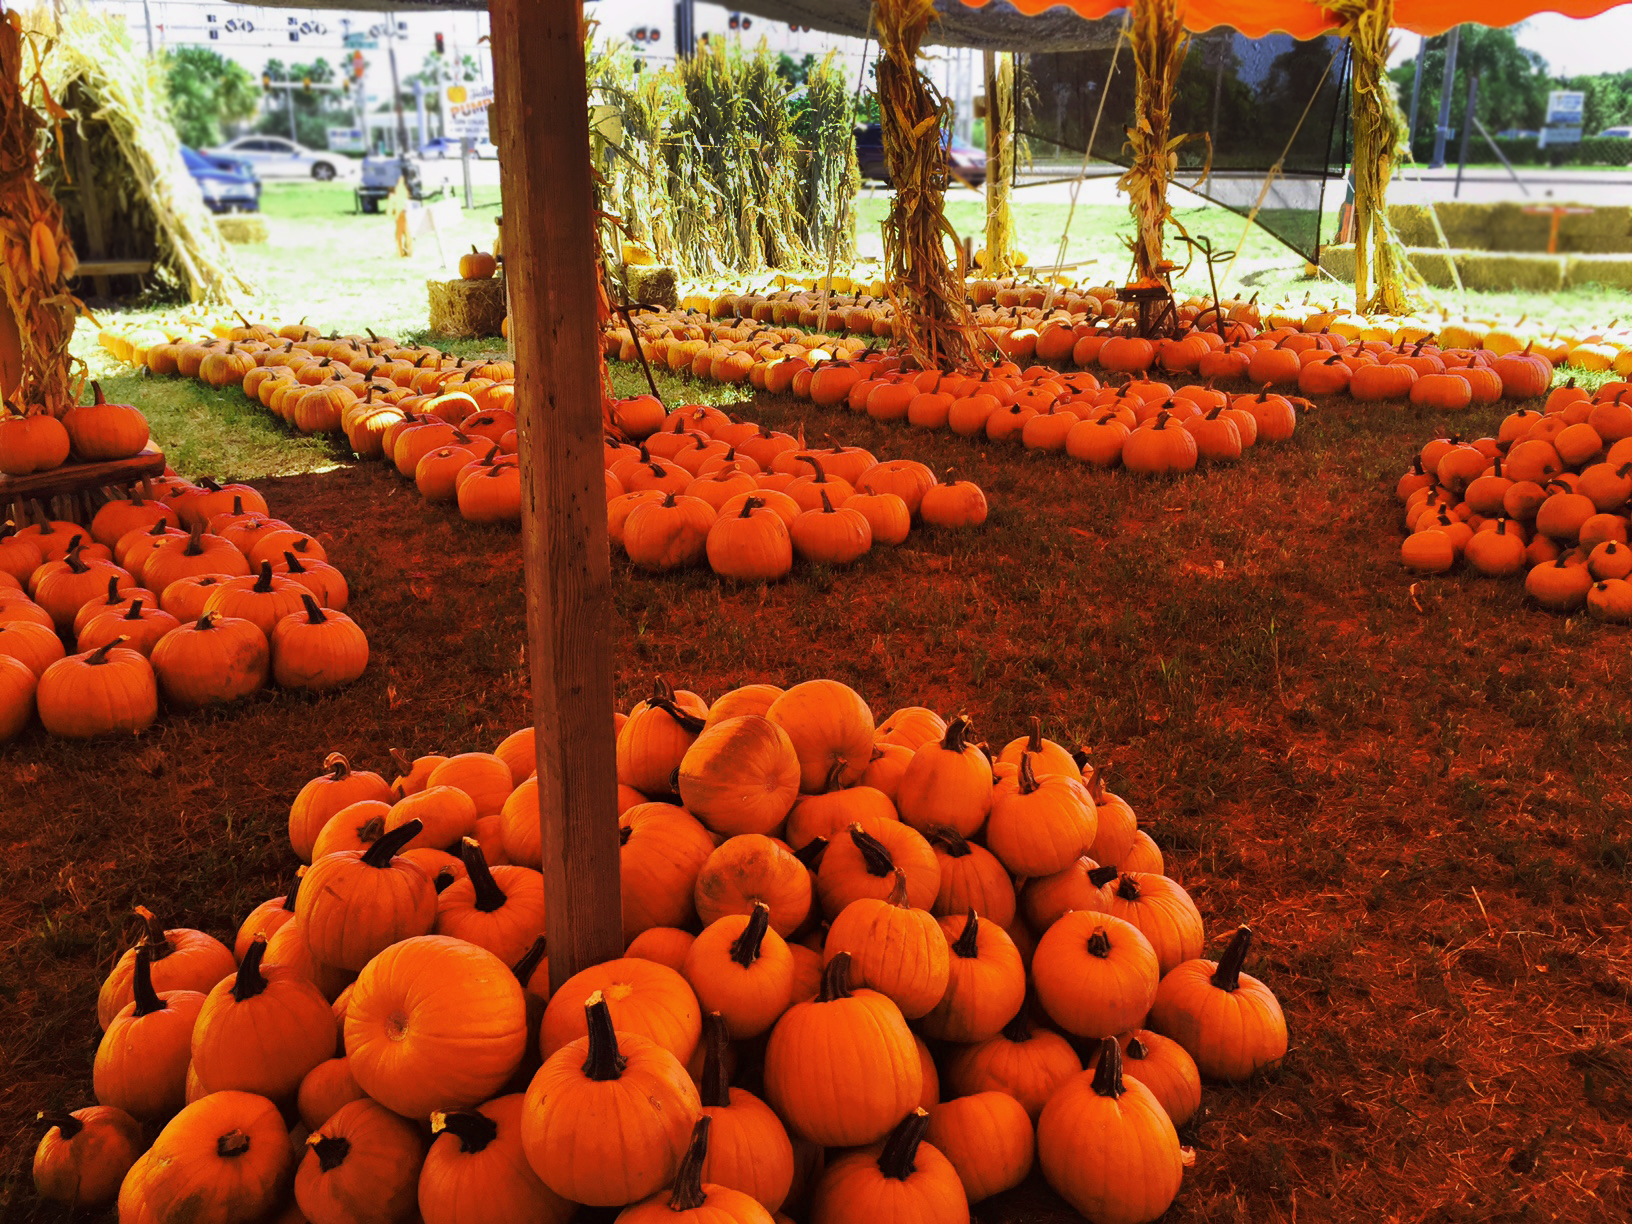 So Many Pumpkins!